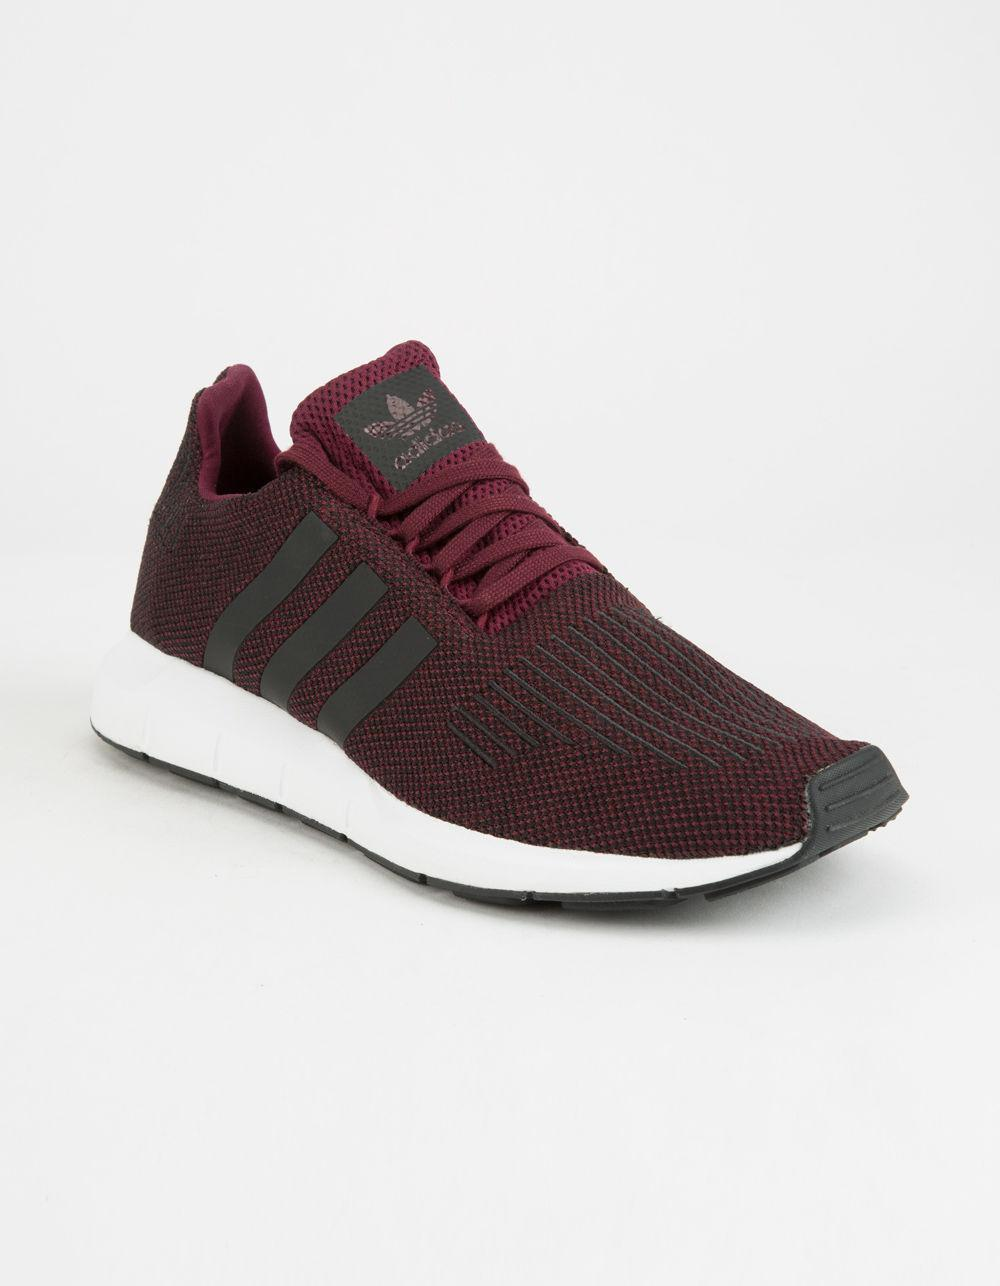 Lyst - adidas Swift Run Sneakers for Men - Save 42% 41b9145a5